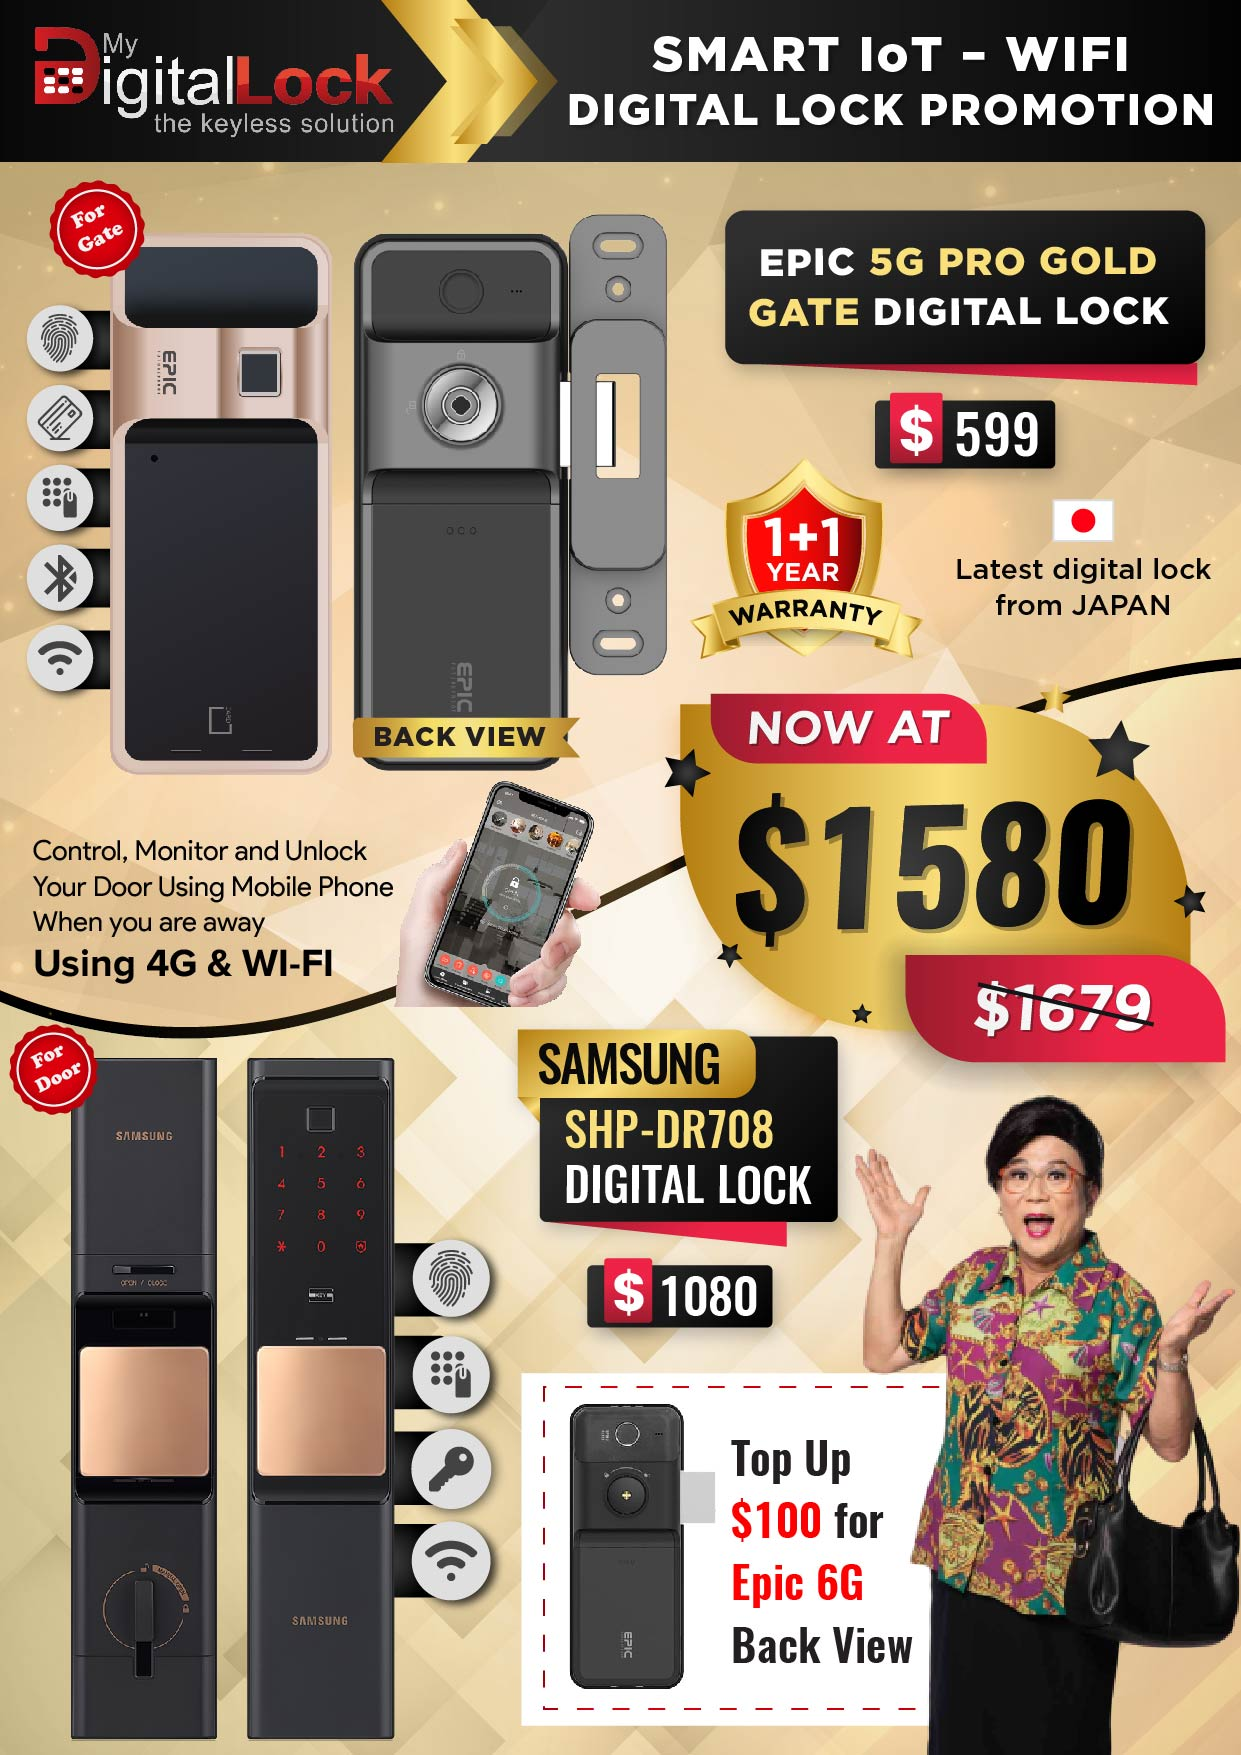 EPIC 5G PRO Gold Gate and Samsung SHP-DR708 Door Digital Lock Promotions